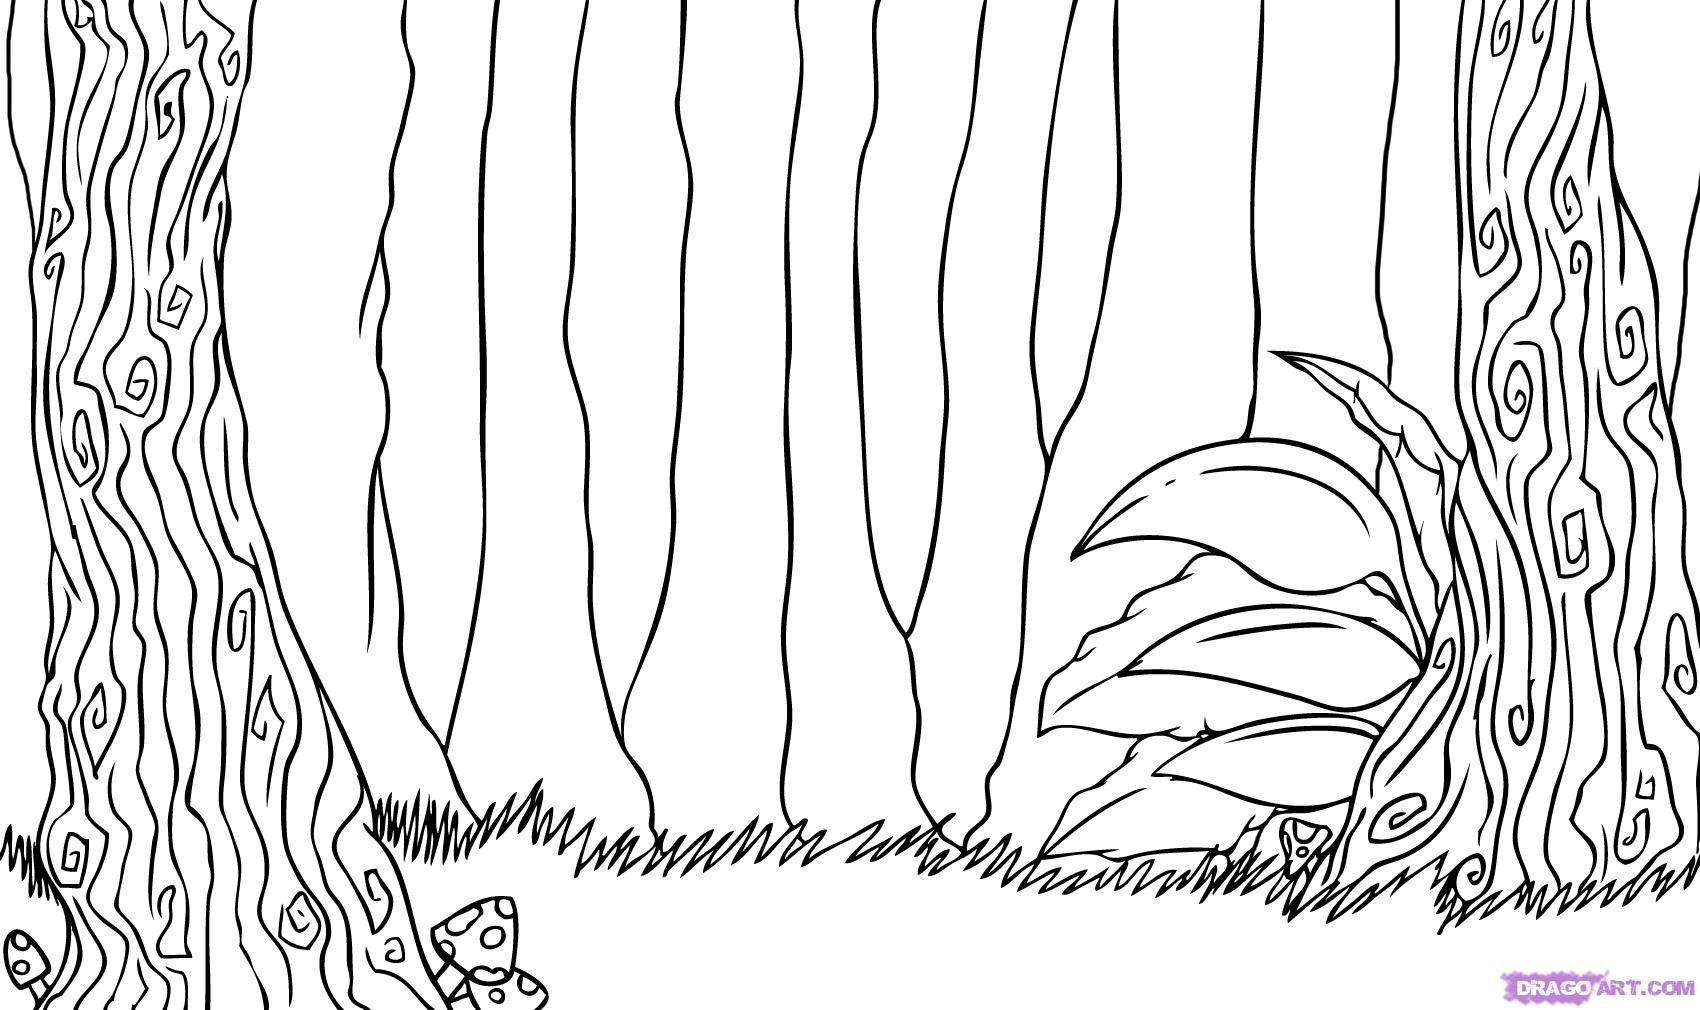 Advanced forests Coloring Pages | easy scenery drawings for kids ...